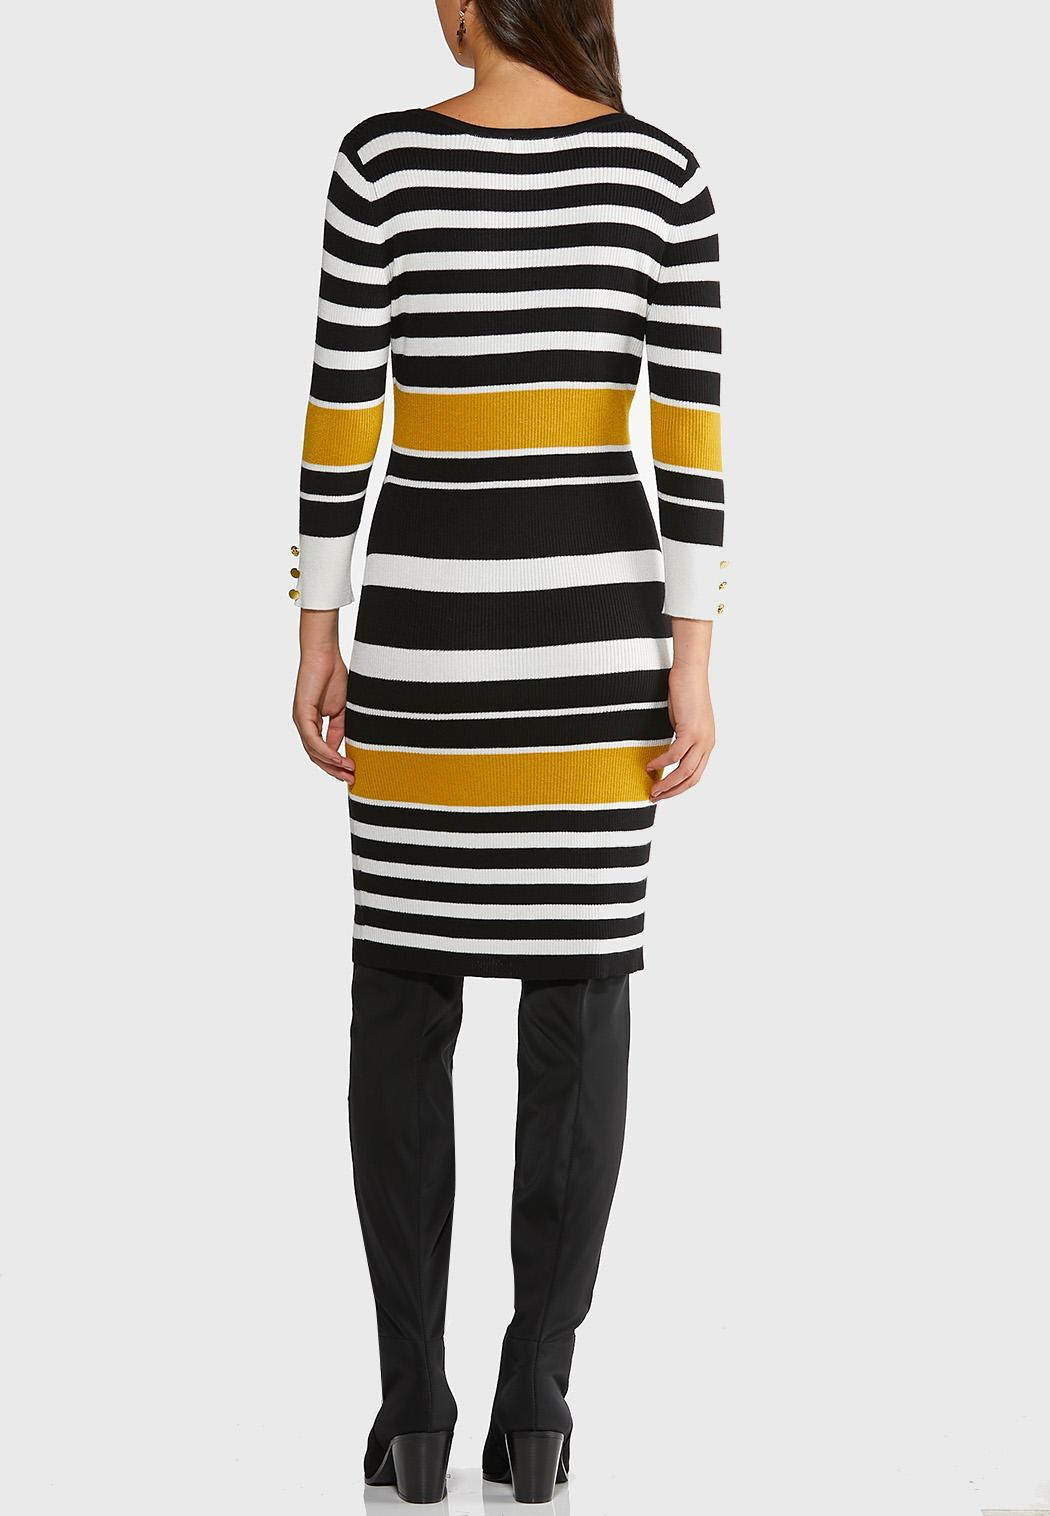 Ribbed Striped Sweater Dress (Item #44343615)